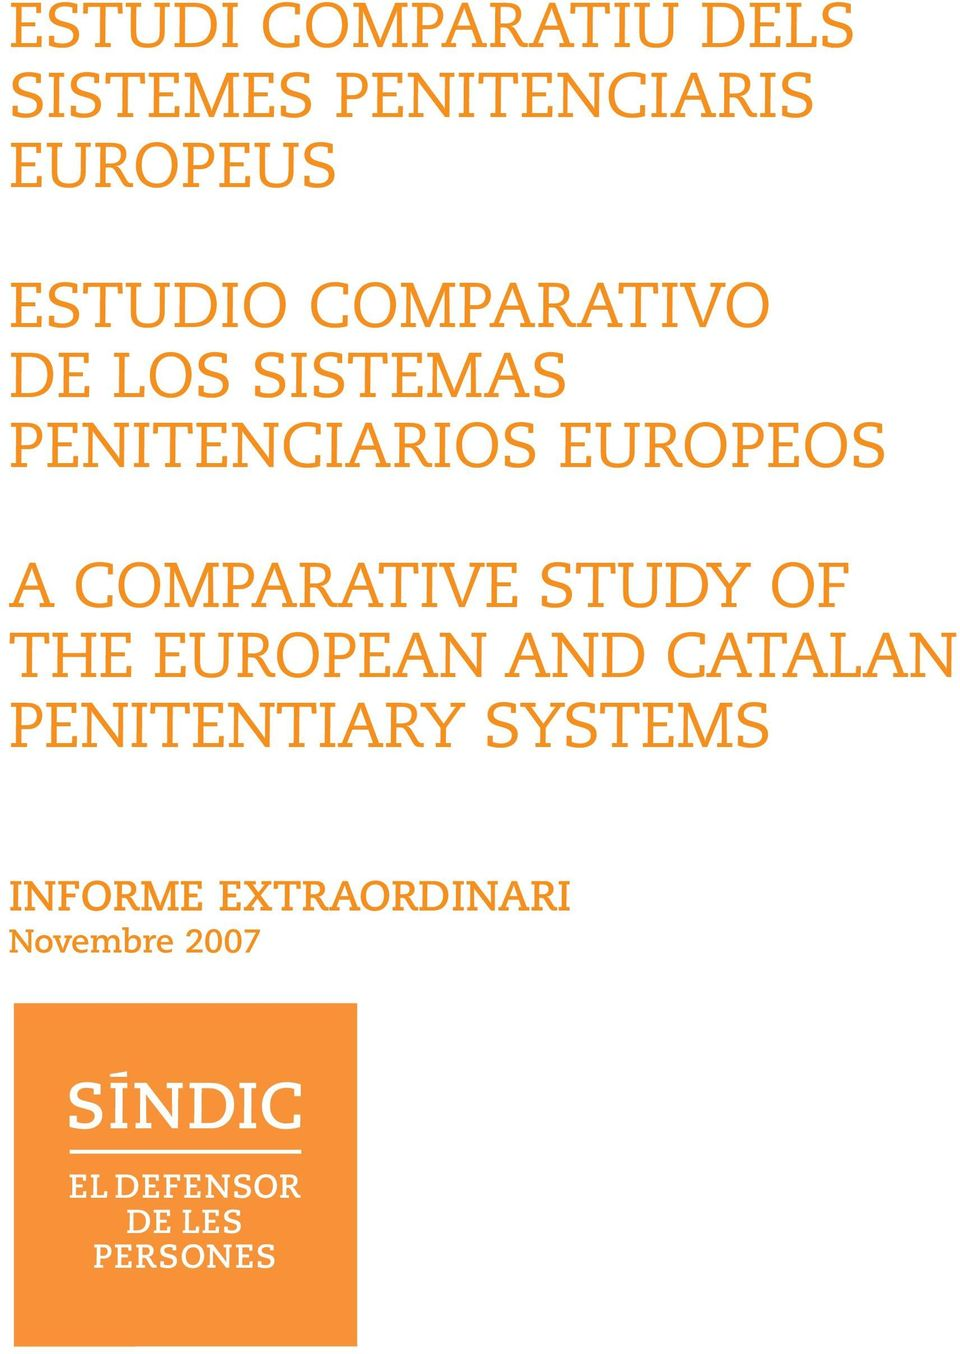 COMPARATIVE STUDY OF THE EUROPEAN AND CATALAN PENITENTIARY